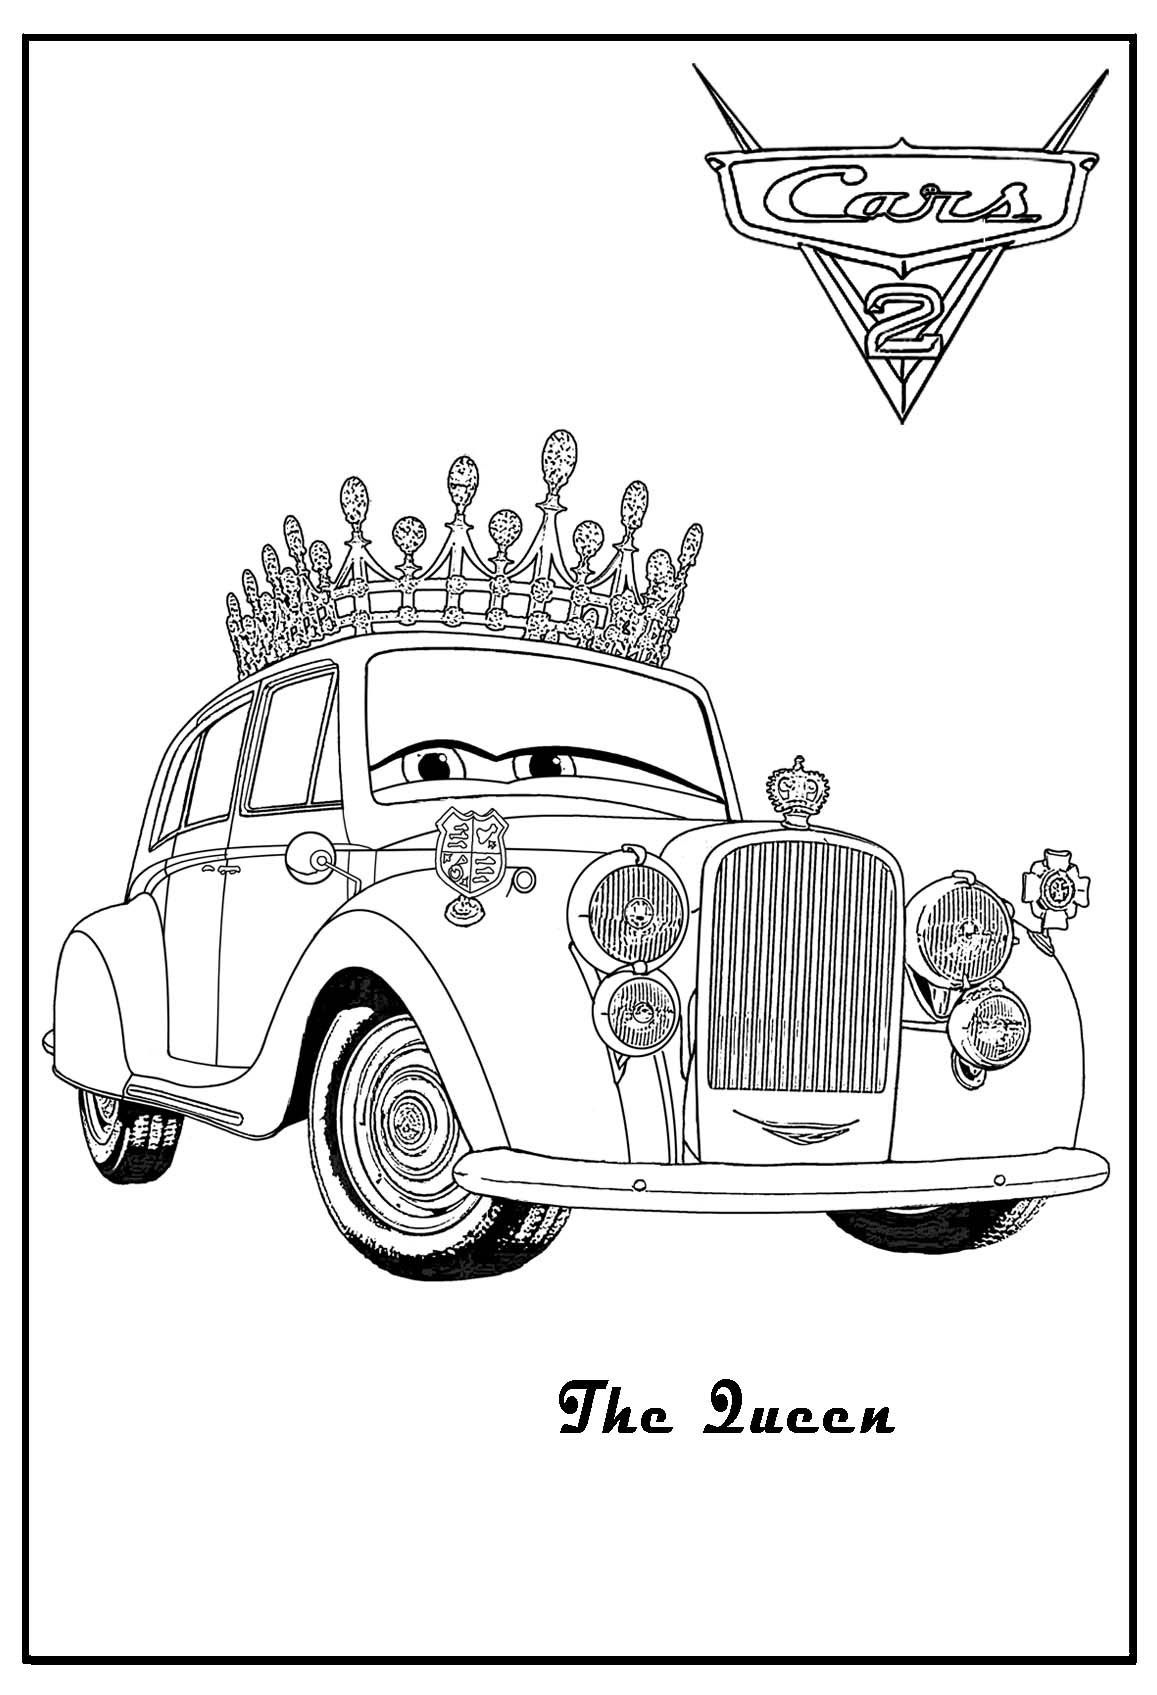 cars 2 printable coloring pages cars coloring the queen cars coloring luigi cars coloring lamborghini - Cars 2 Coloring Pages To Print